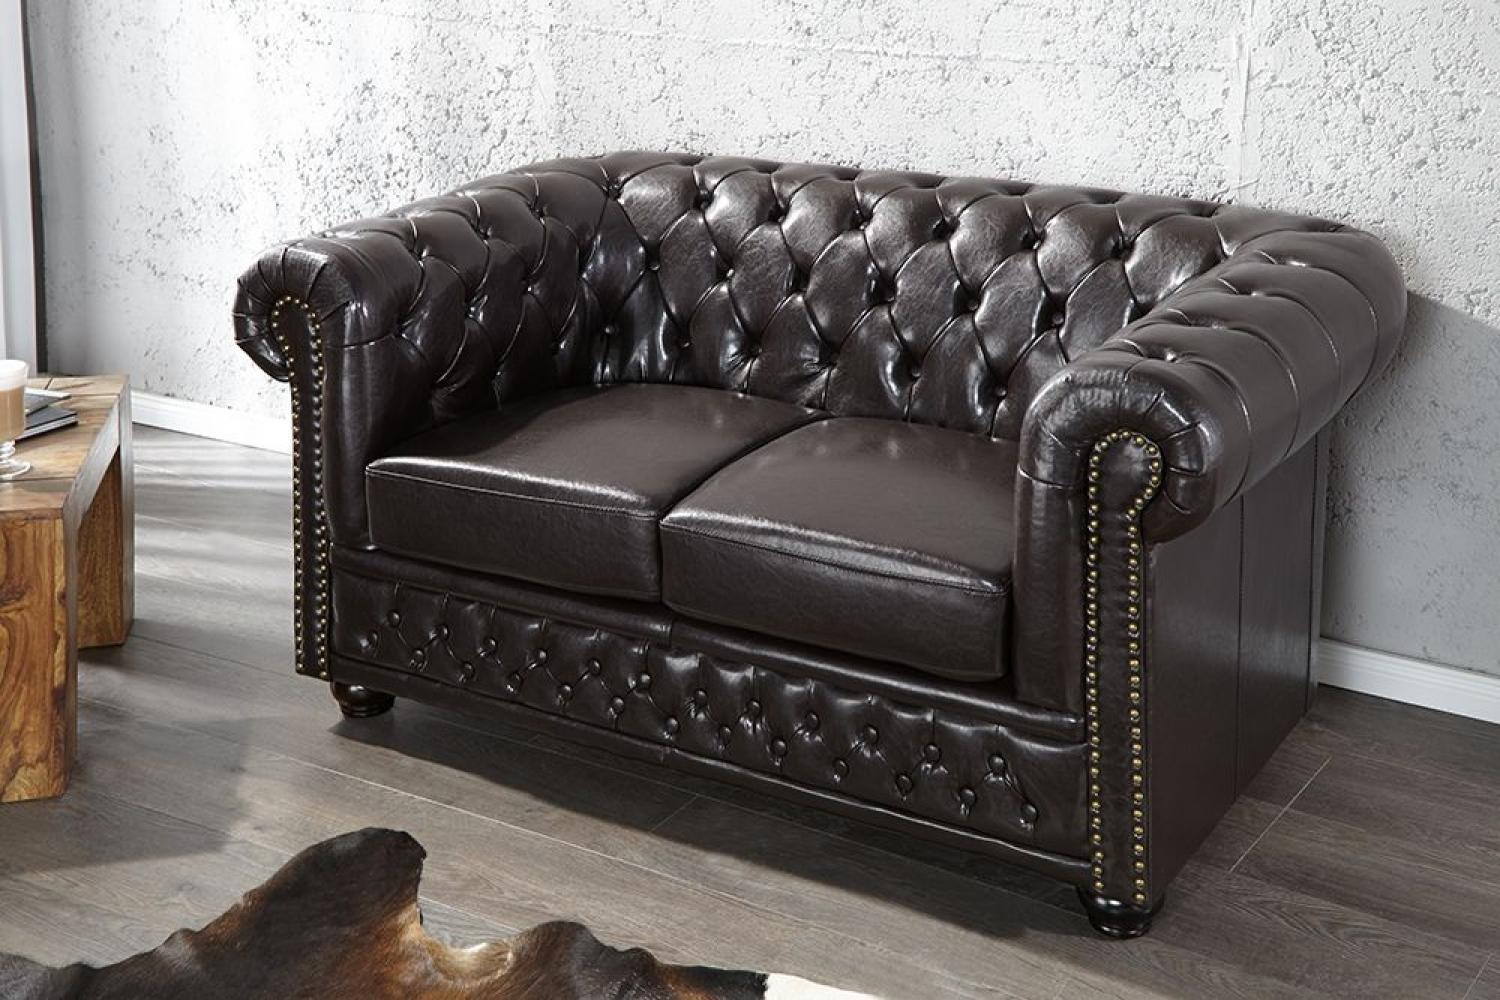 Photos canap chesterfield convertible 2 places - Chesterfield convertible occasion ...